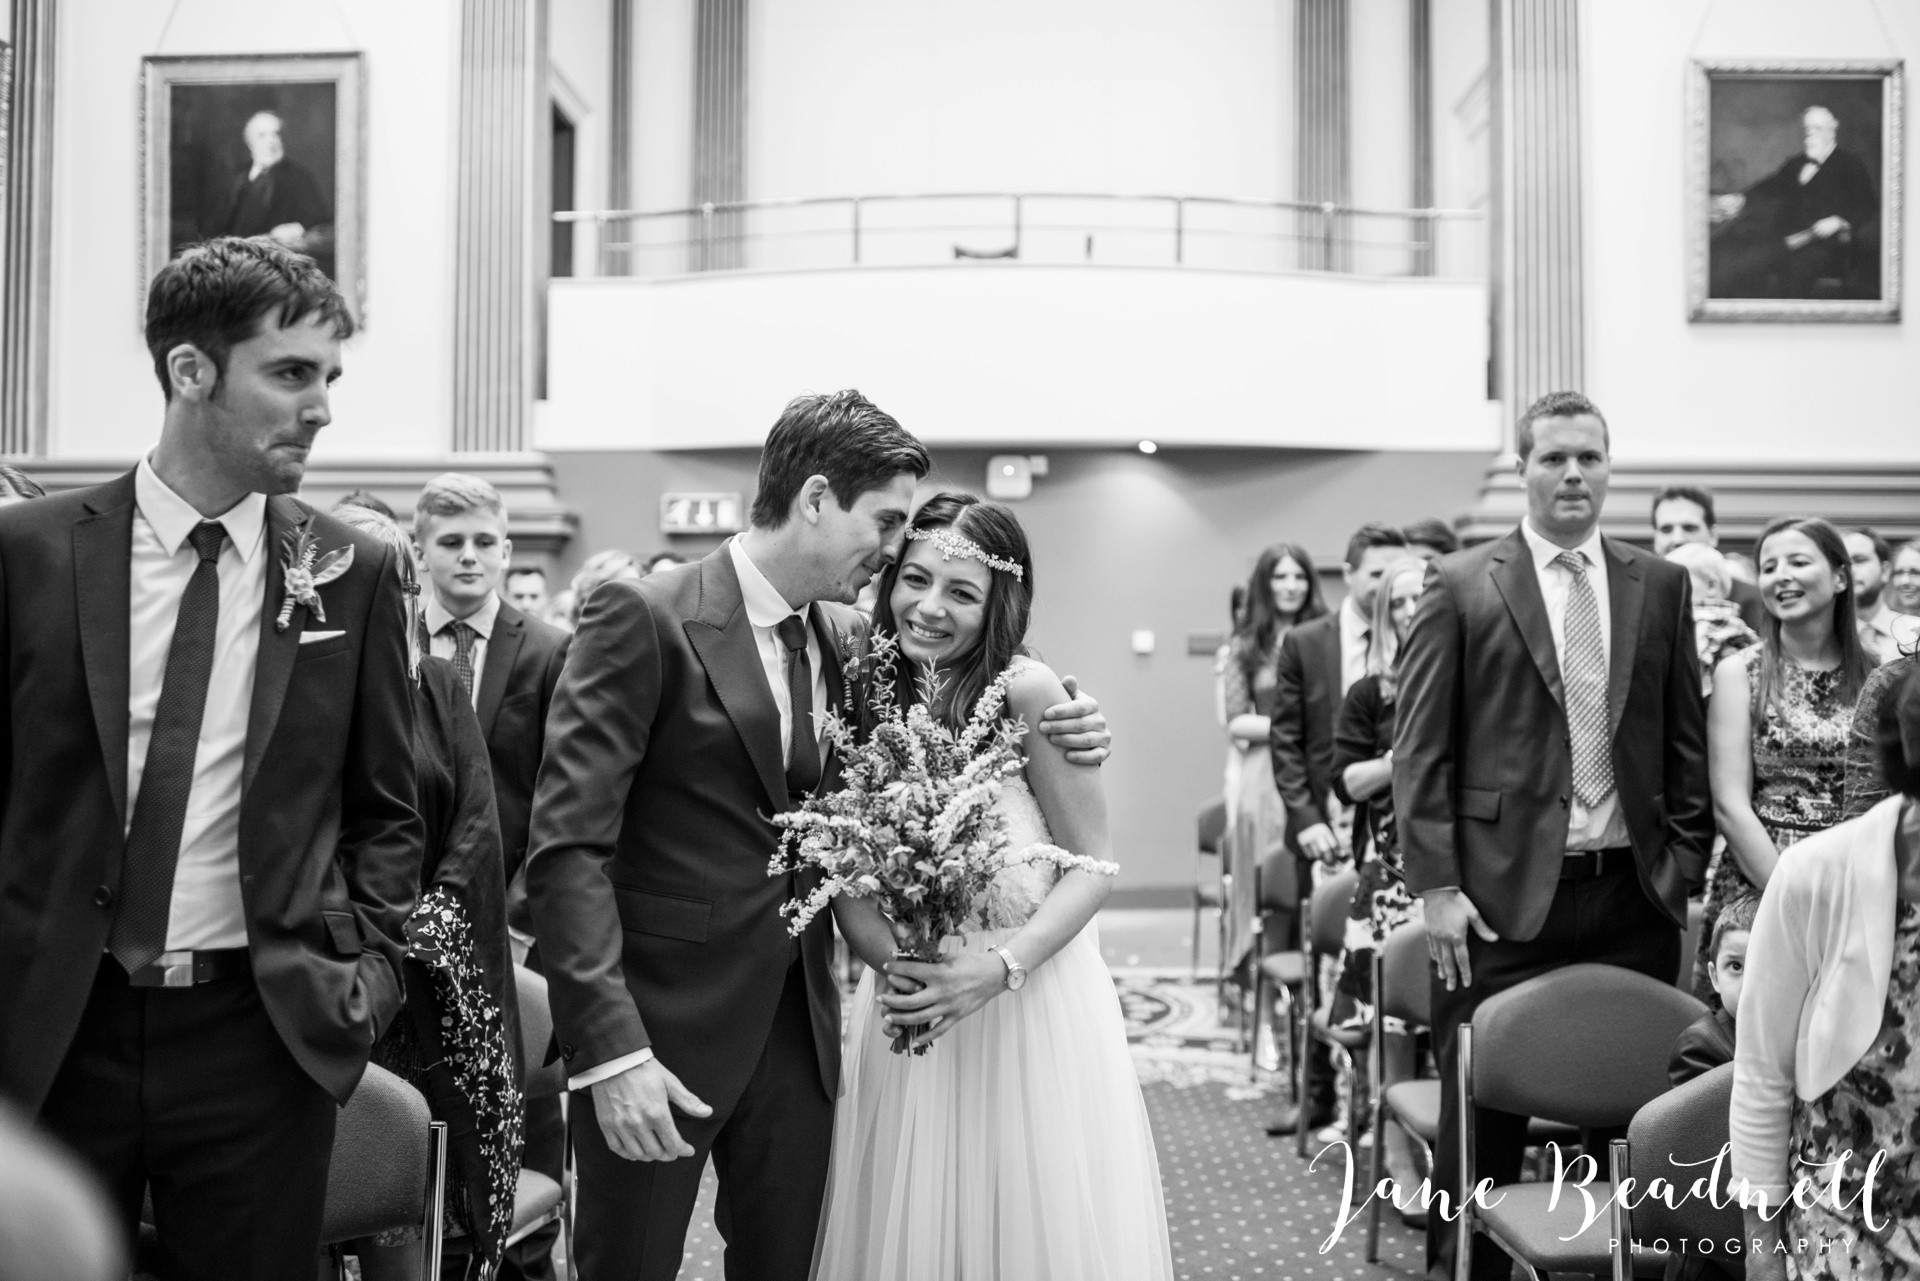 Left Bank Centre Leeds wedding photography by Jane Beadnell photography Yorkshire_0032